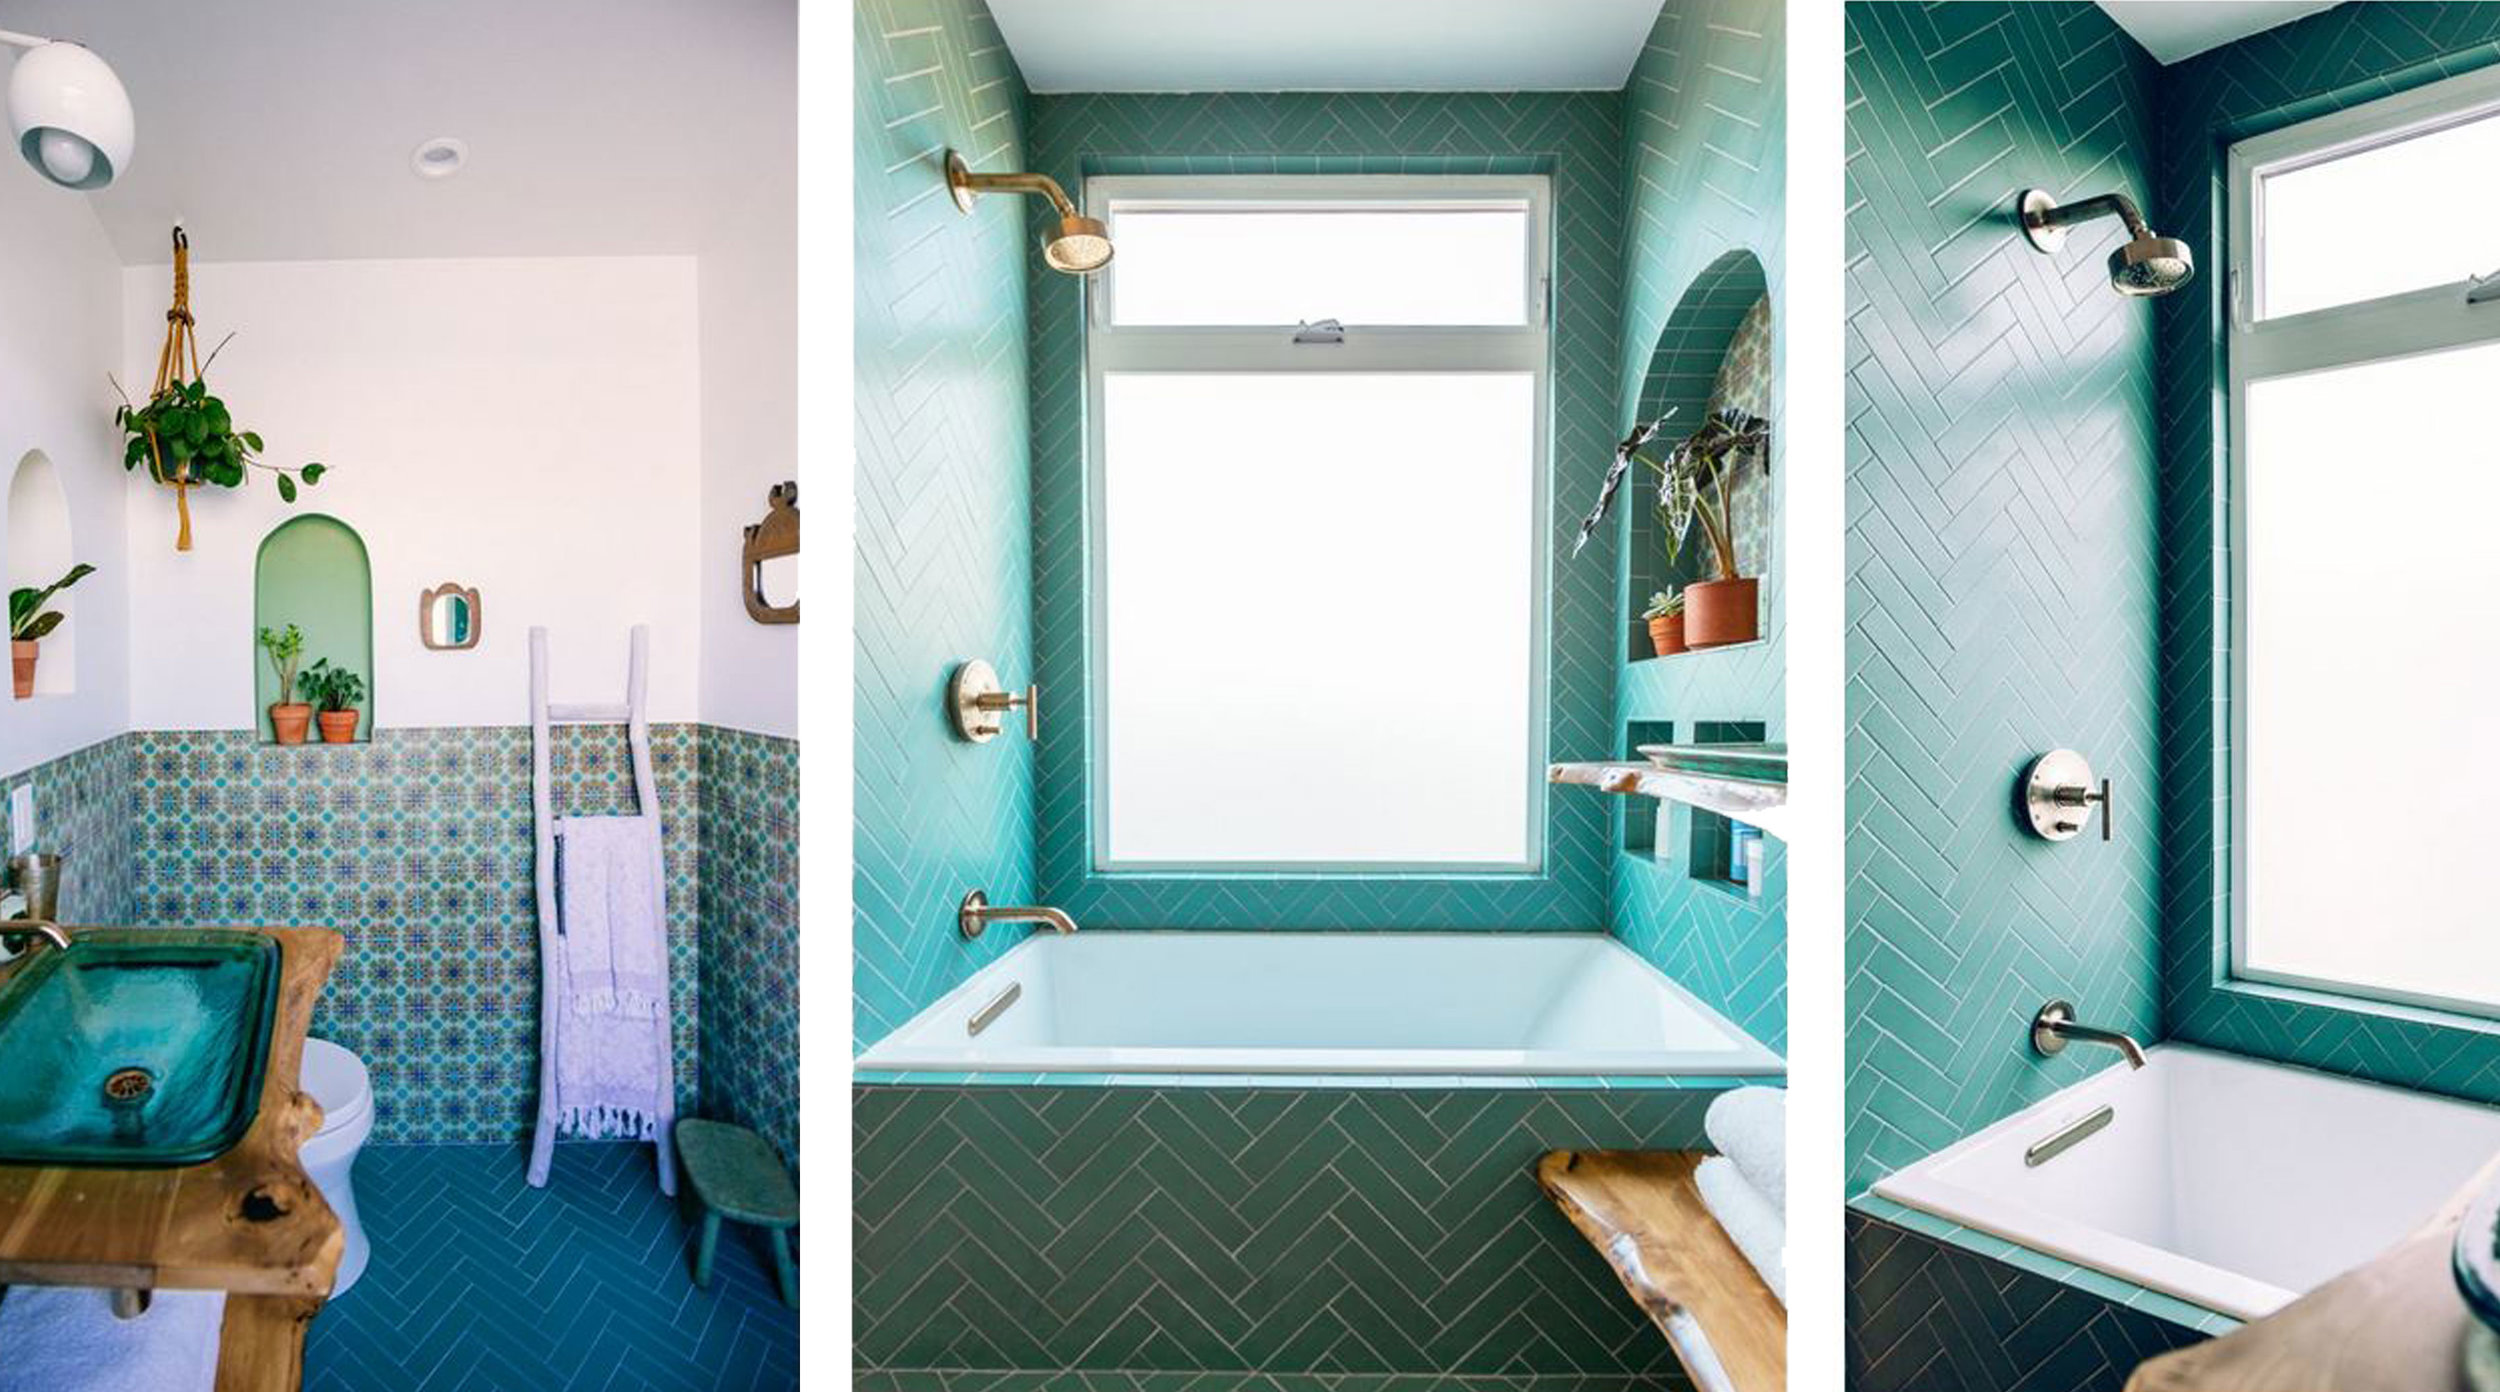 aqua tile, aqua tiles, teal tiles, bohemian bathroom, green, green tiles, turquoise, turquoise tiles, rustic bathroom, jungle green, marrs green, herringbone tile, herringbone tiles, mosaic tiles, bohemian interiors, hanging plants